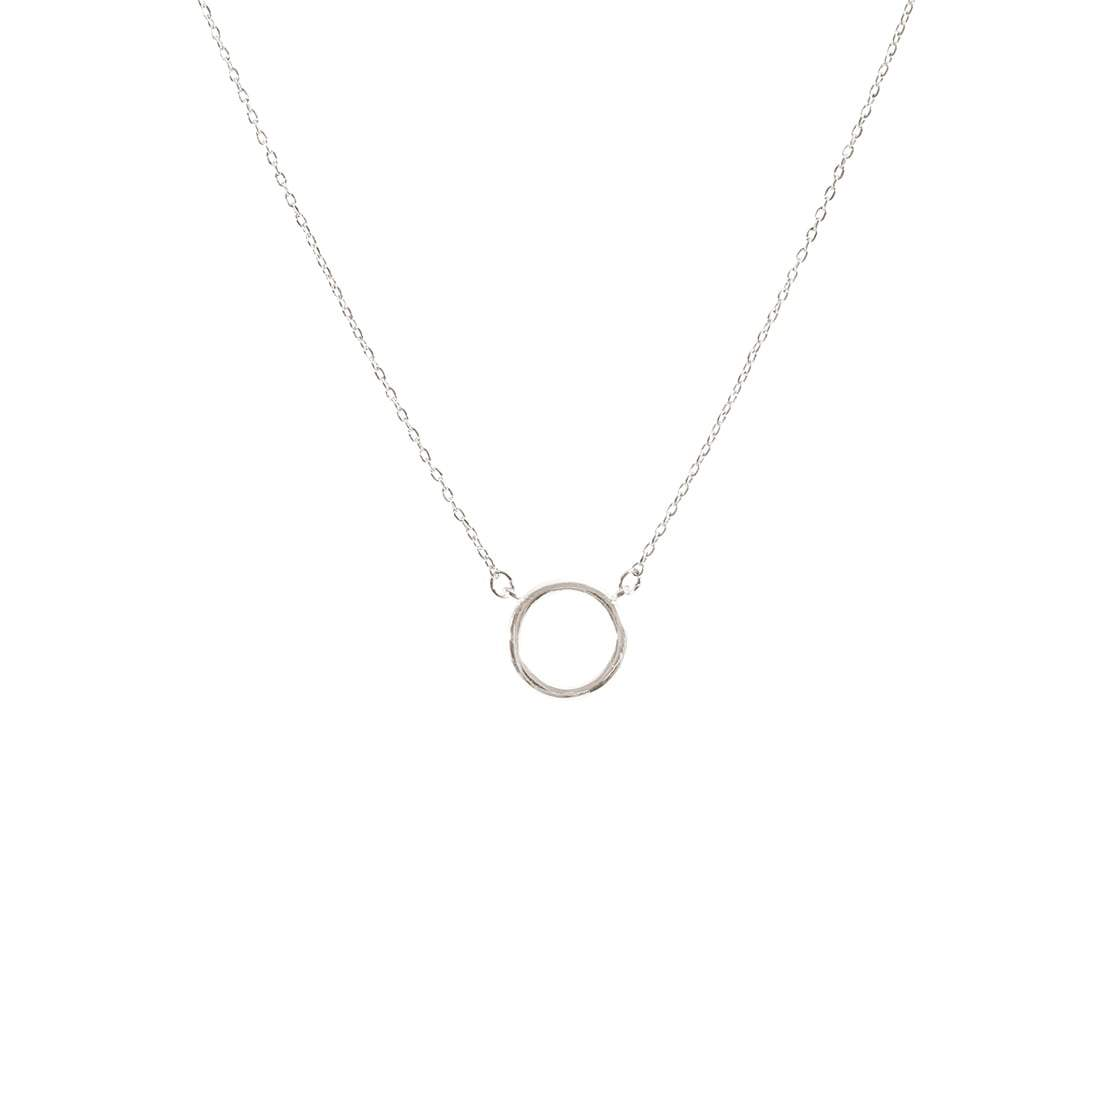 Single Circle Necklace in Silver or Gold